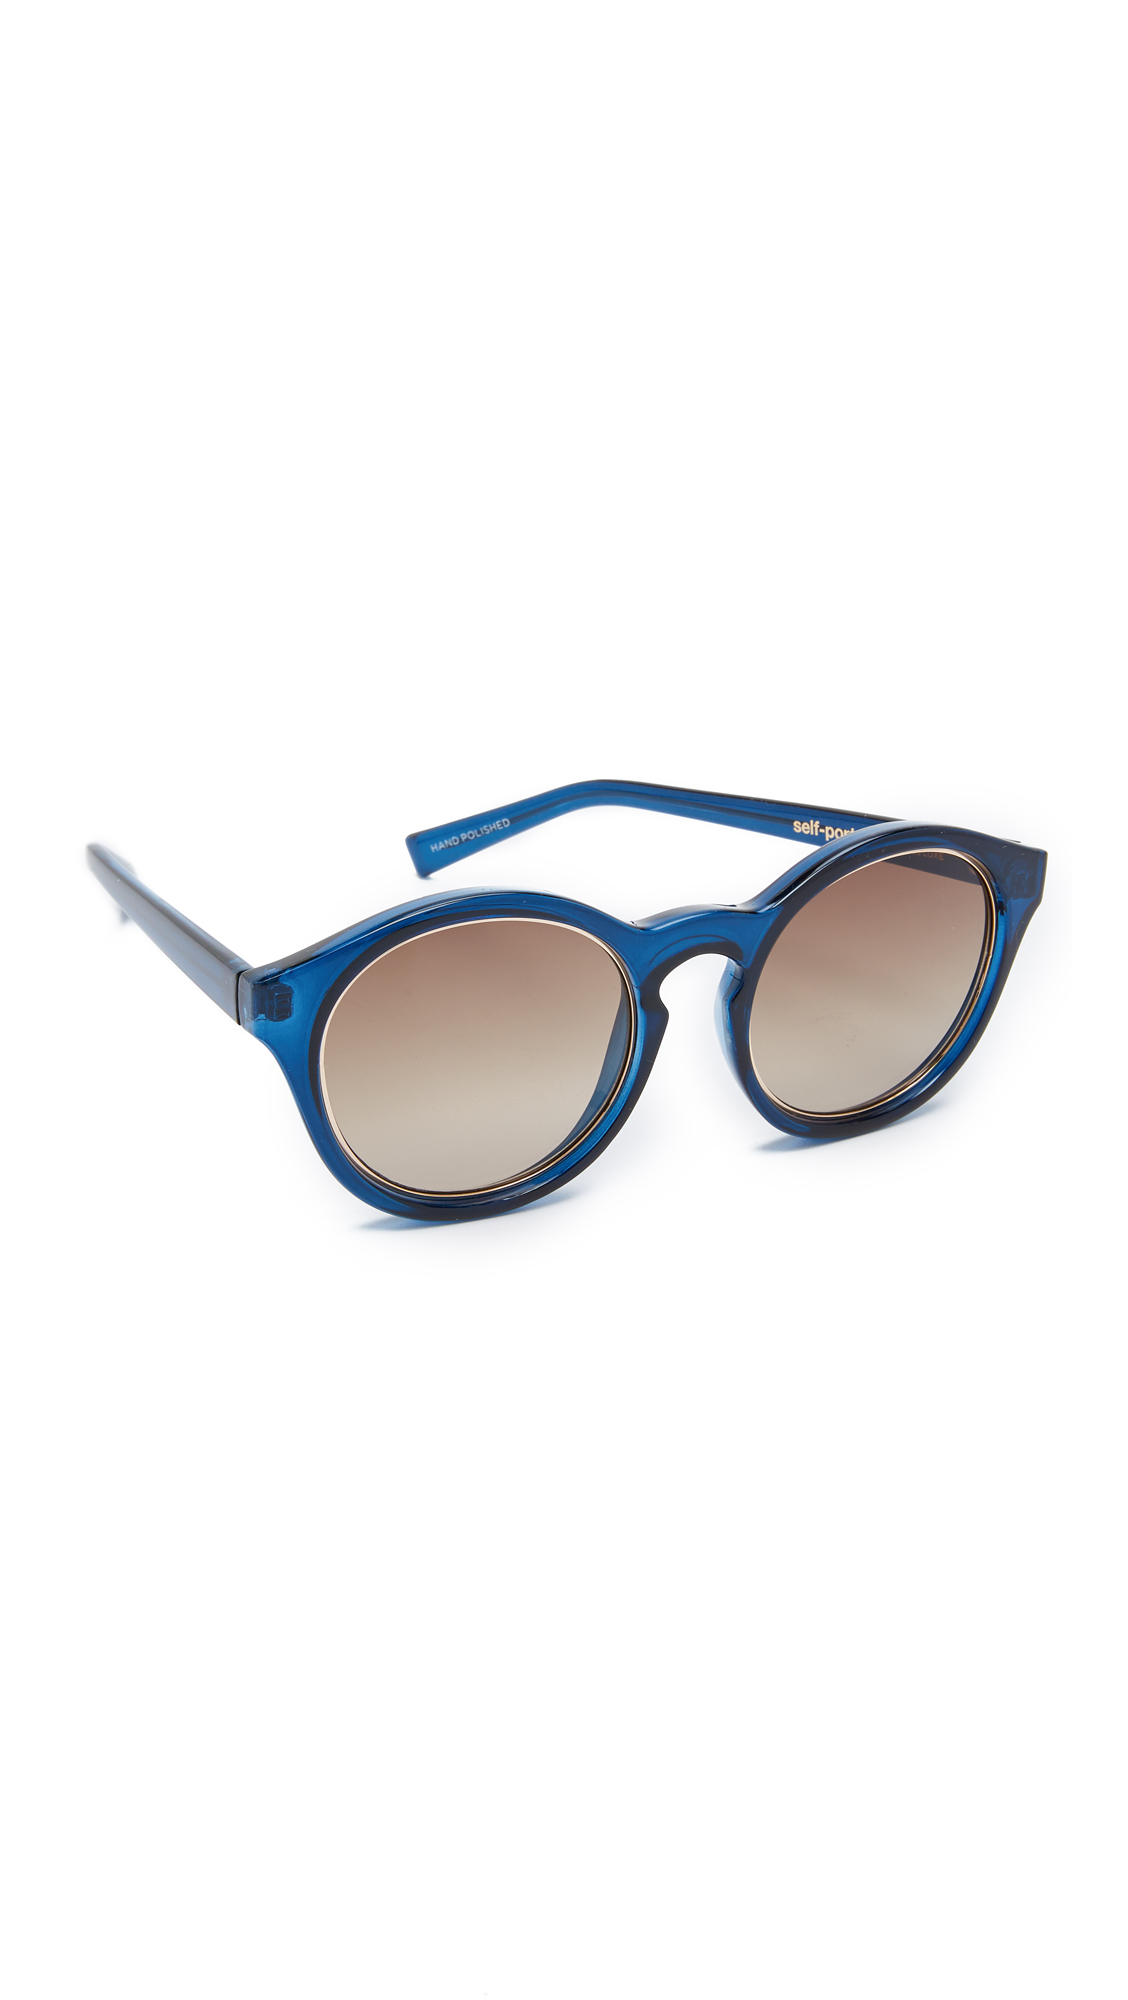 5940c59aaf Lyst - Self-Portrait X Le Specs Edition Four Sunglasses in Blue